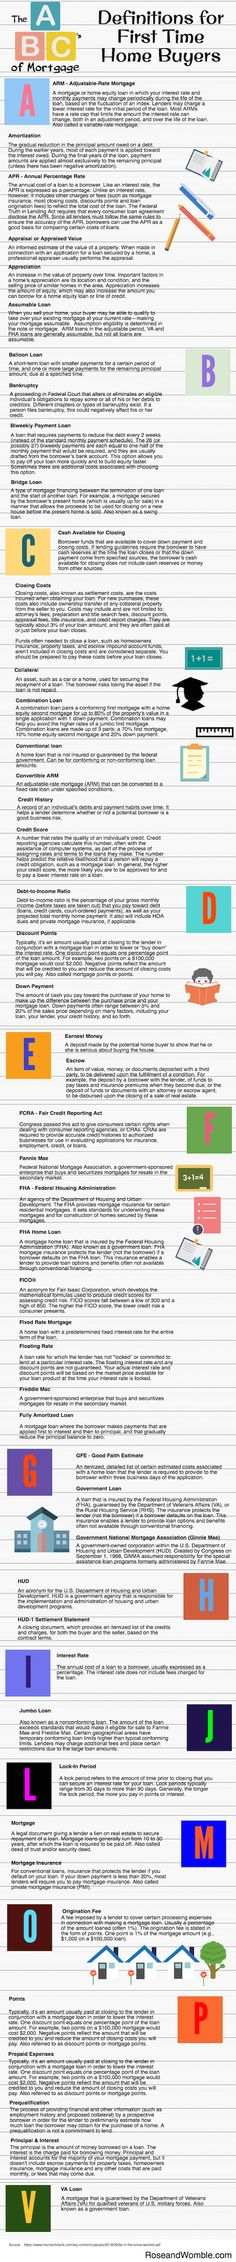 The best list of mortgage definitions - great for first time home buyers